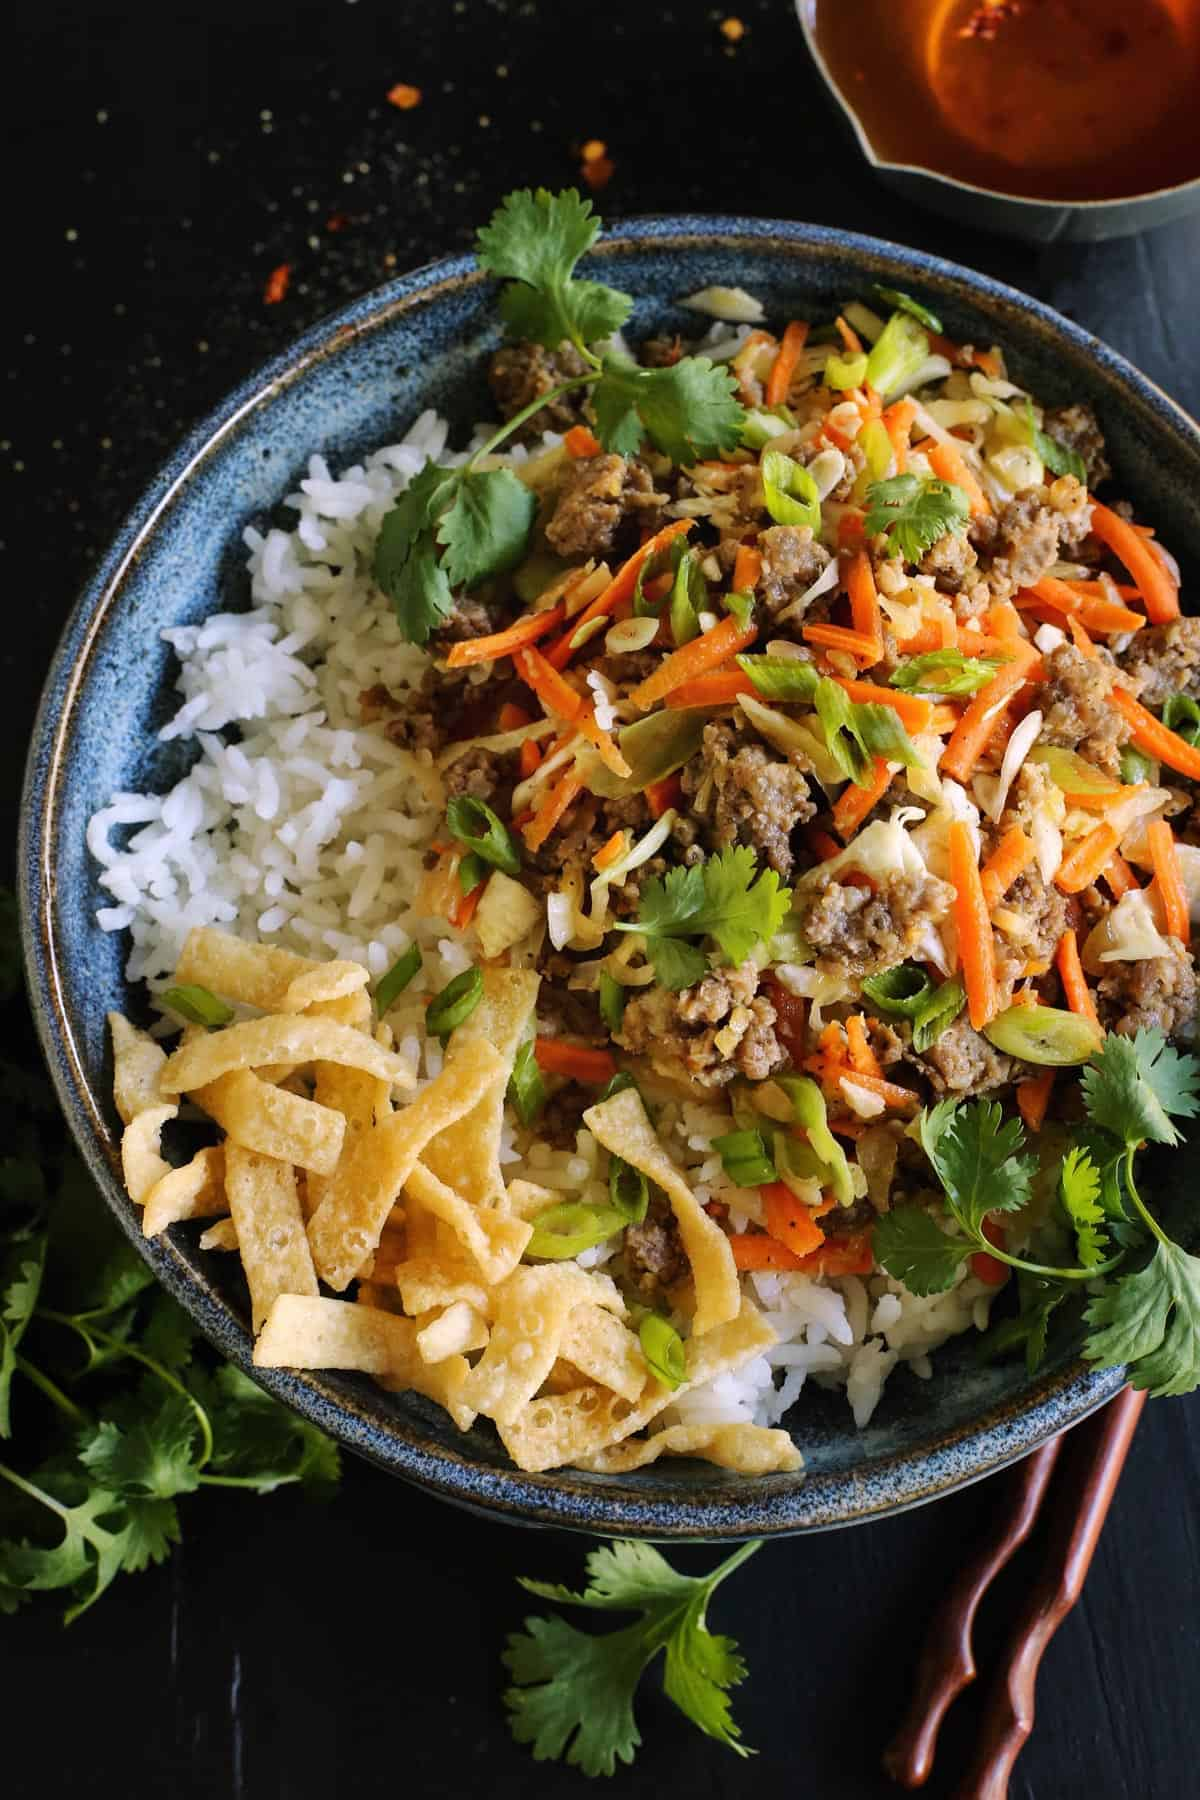 egg roll in a bowl recipe, with ground pork, cabbage, and carrots